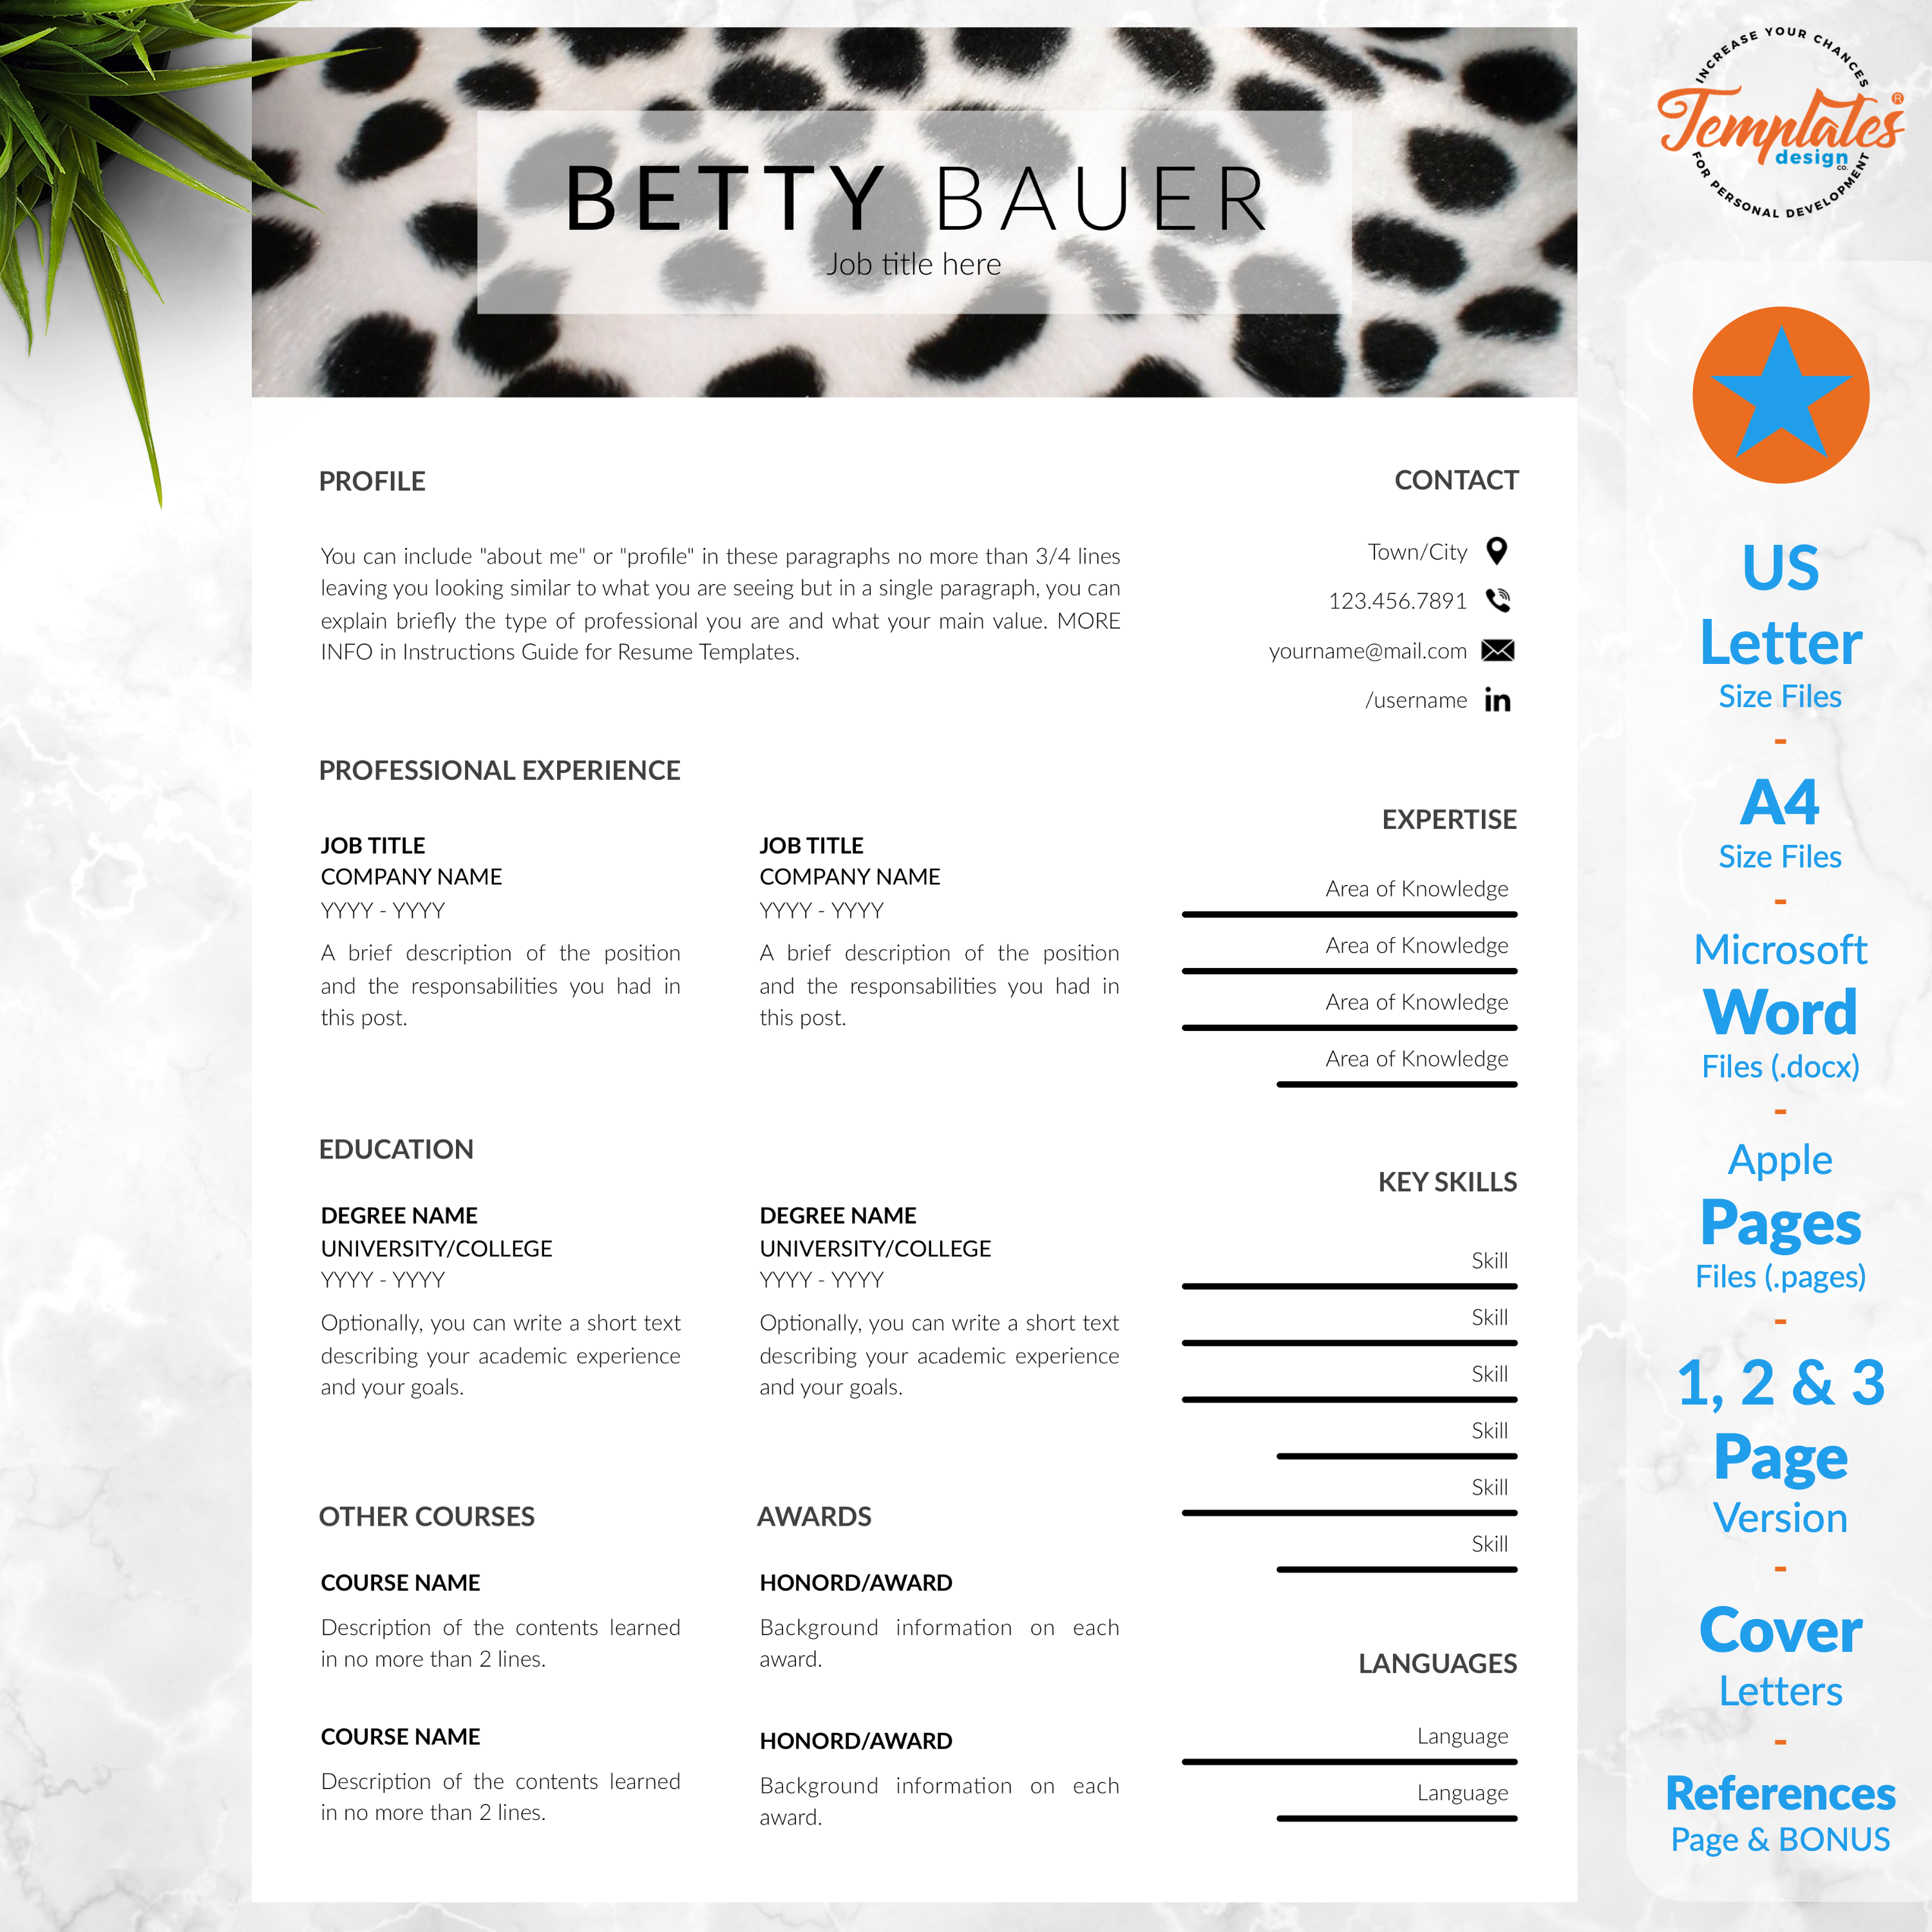 Pet Care Resume Animal Care Cv Template For Word Pages Cv For Animal Care Workers Pet Sitters Or Animal Caretakers Instant Download Reference Letter Template Cv Template Resume Templates